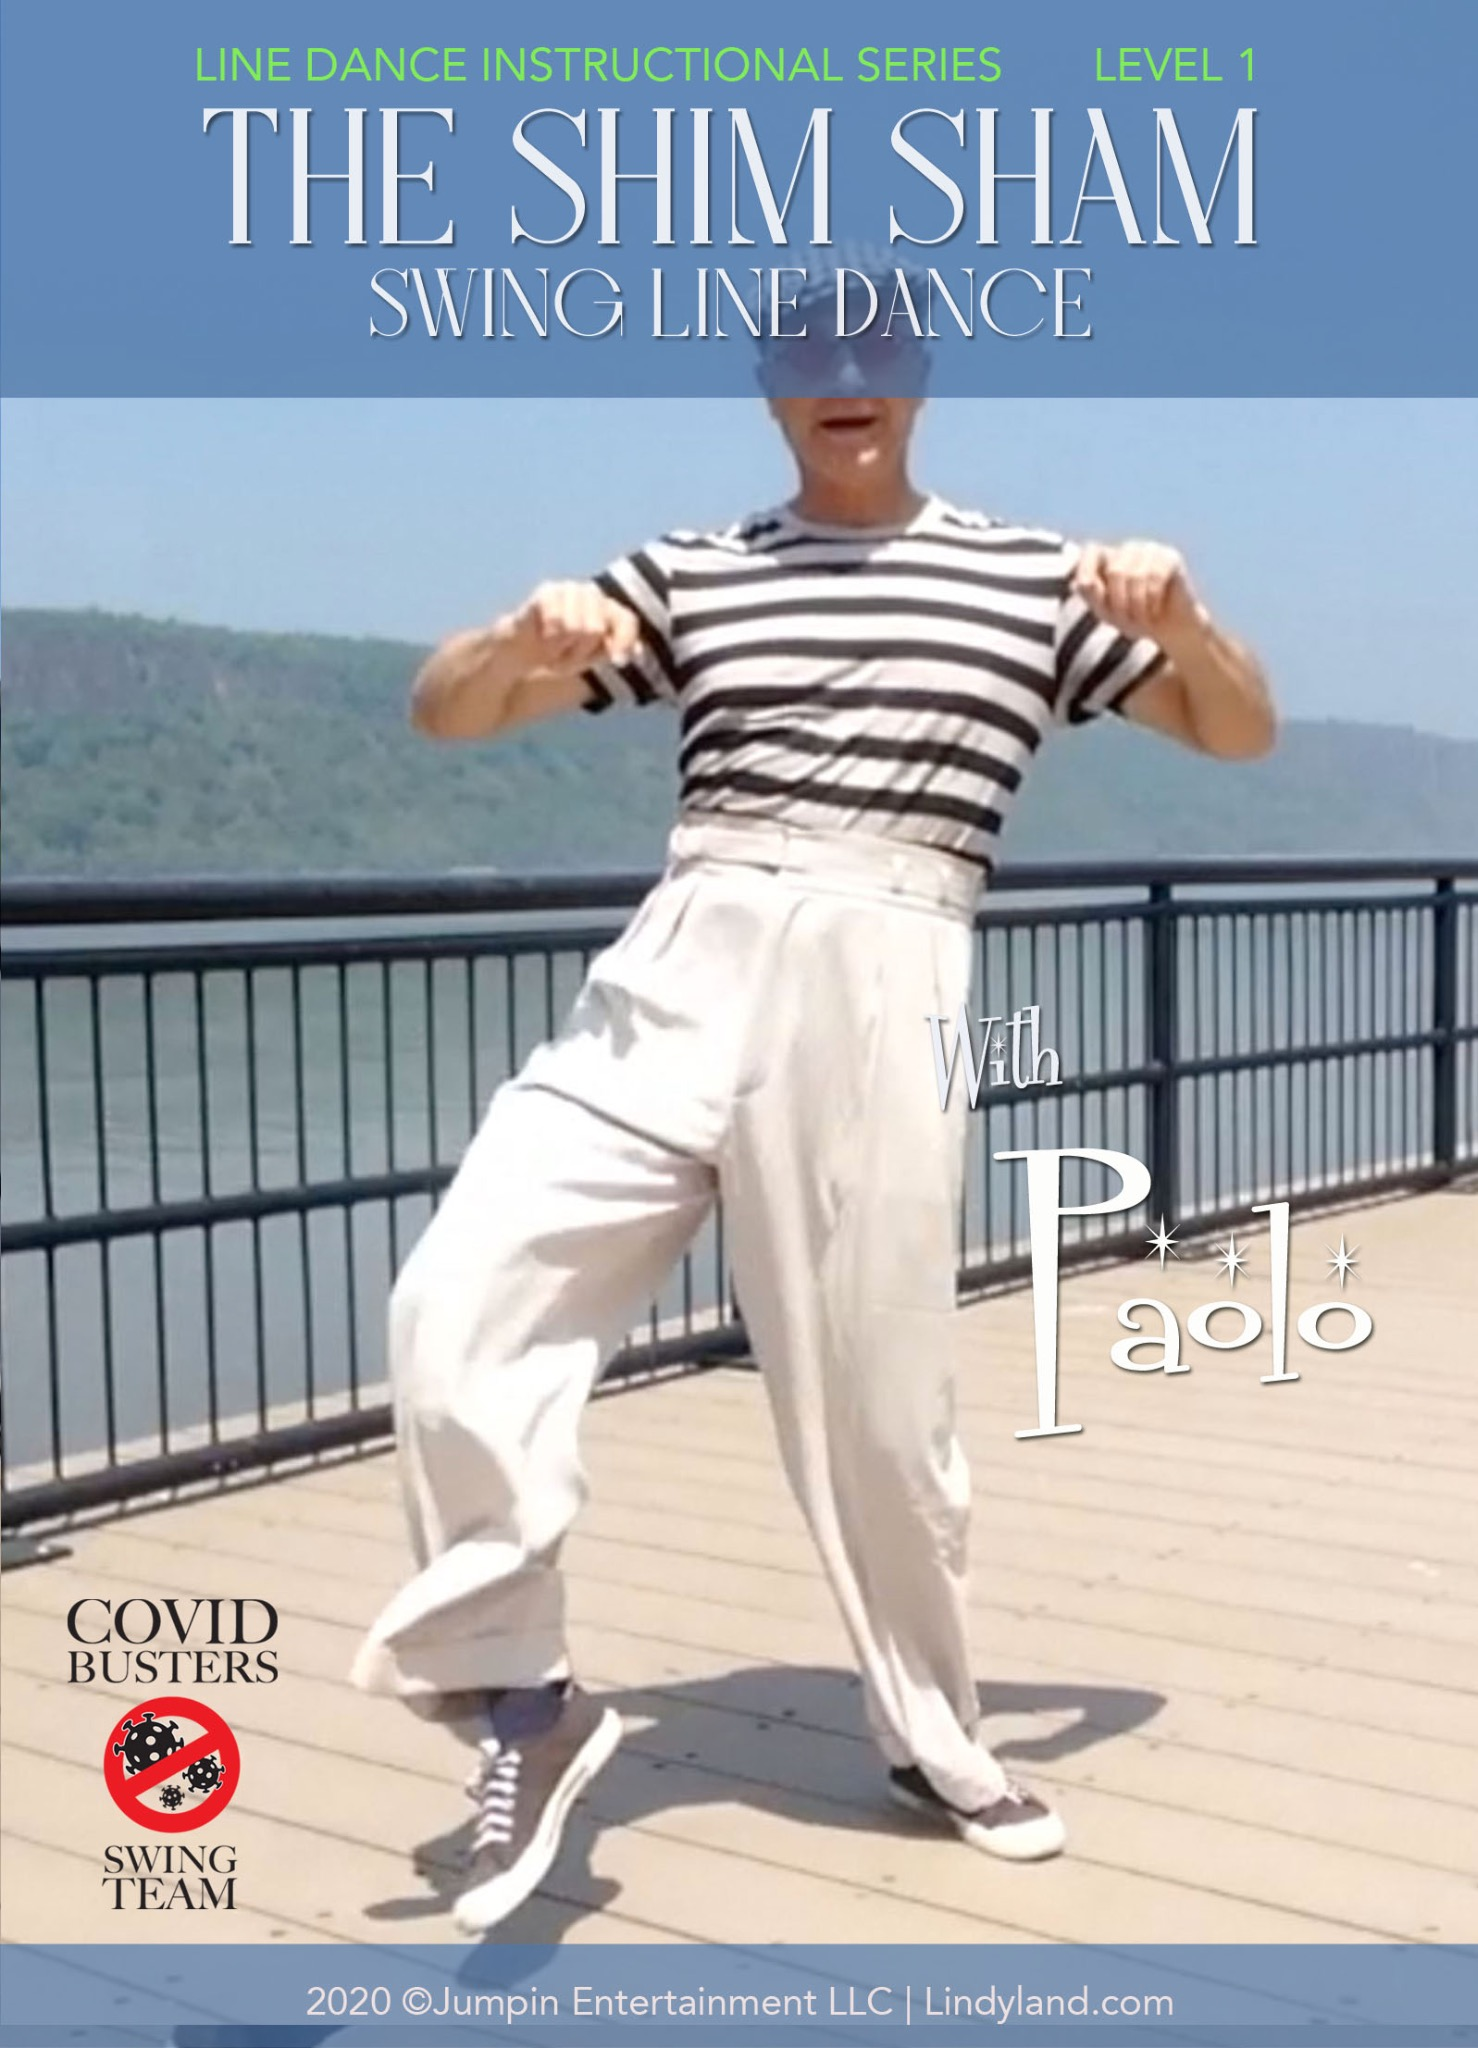 The Shim Sham Line Dance | Instructional